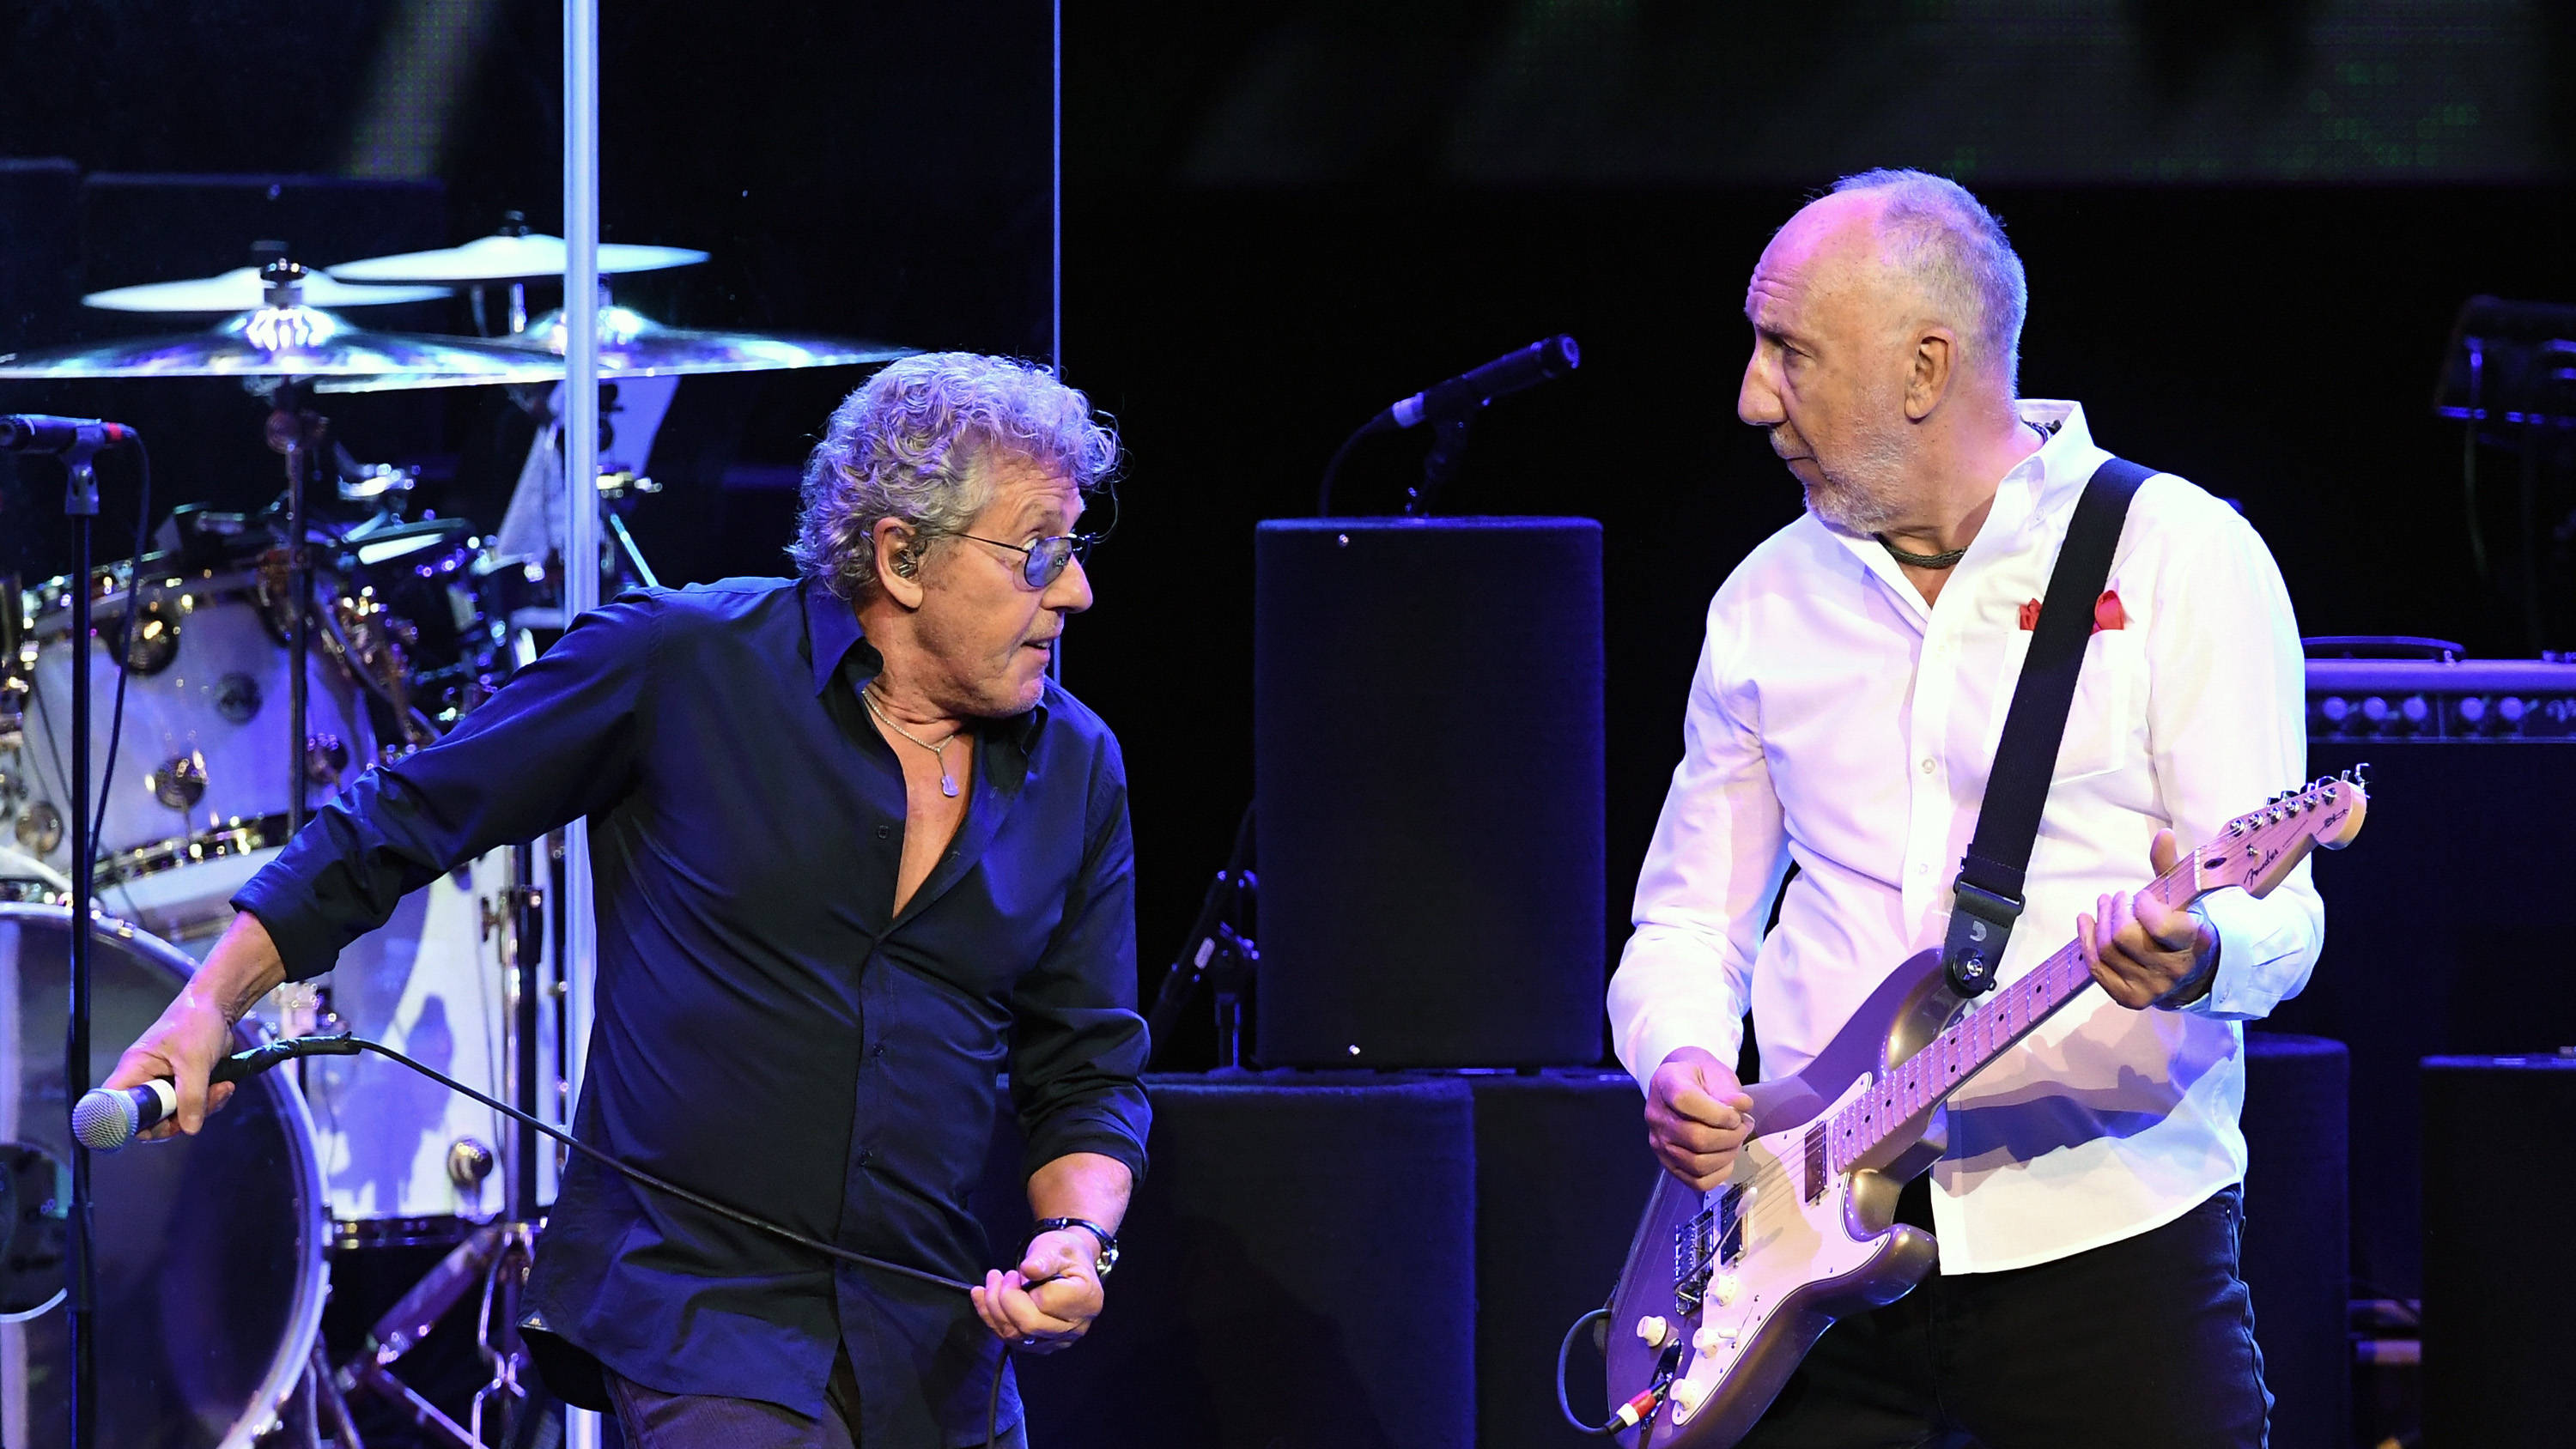 008865381a71 The Who announce huge Wembley Stadium show with big support acts - Gold